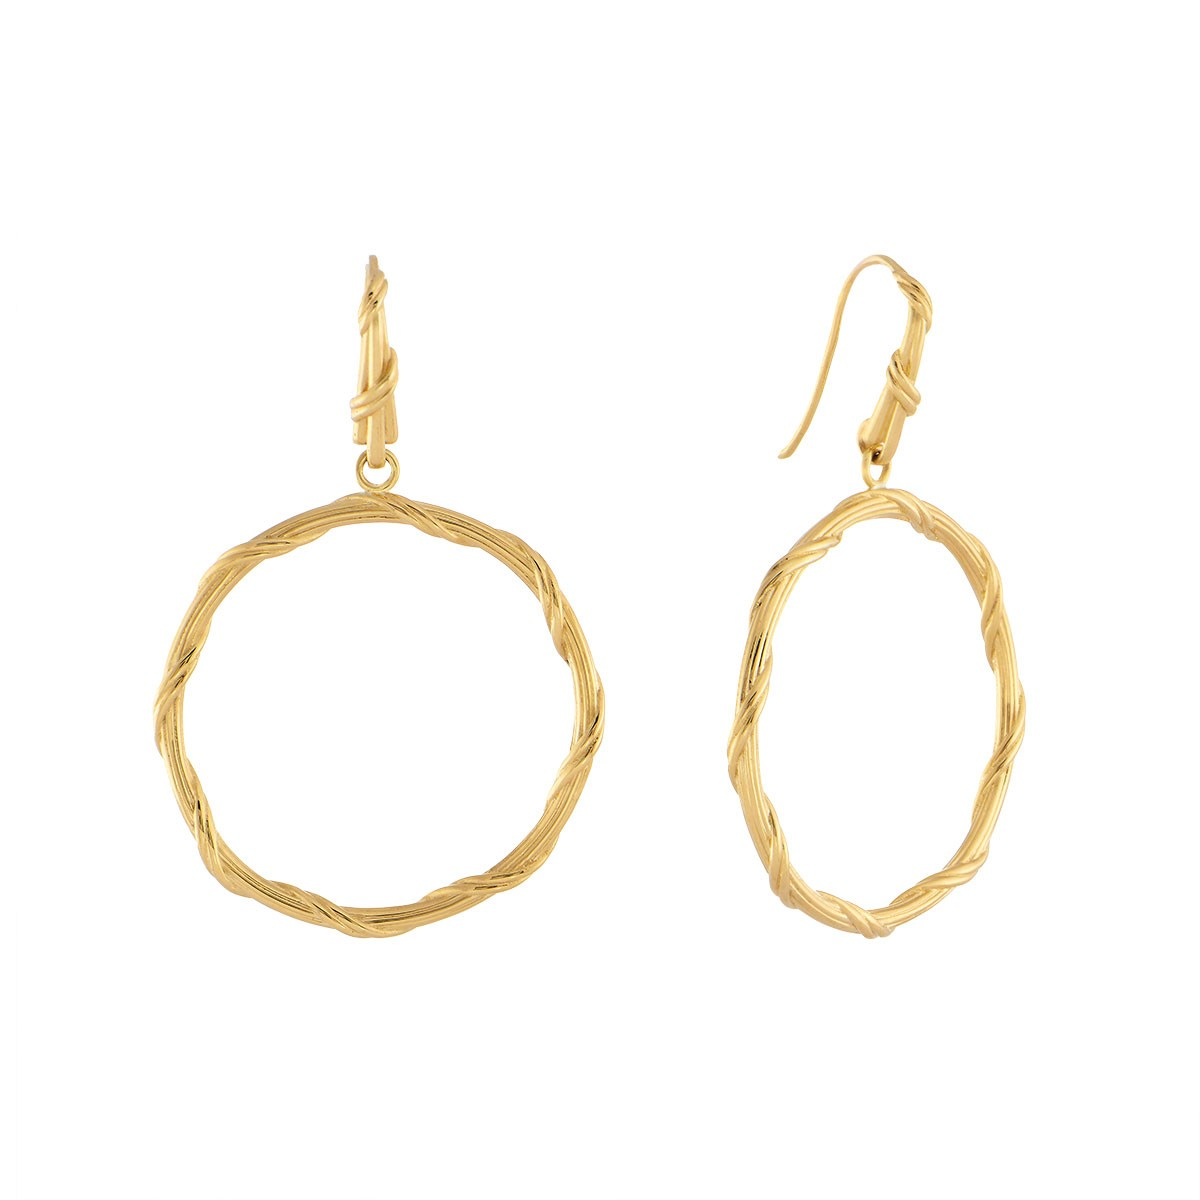 Peter Thomas Roth Ribbon And Reed Heritage Circle Earrings In 18k Yellow Gold